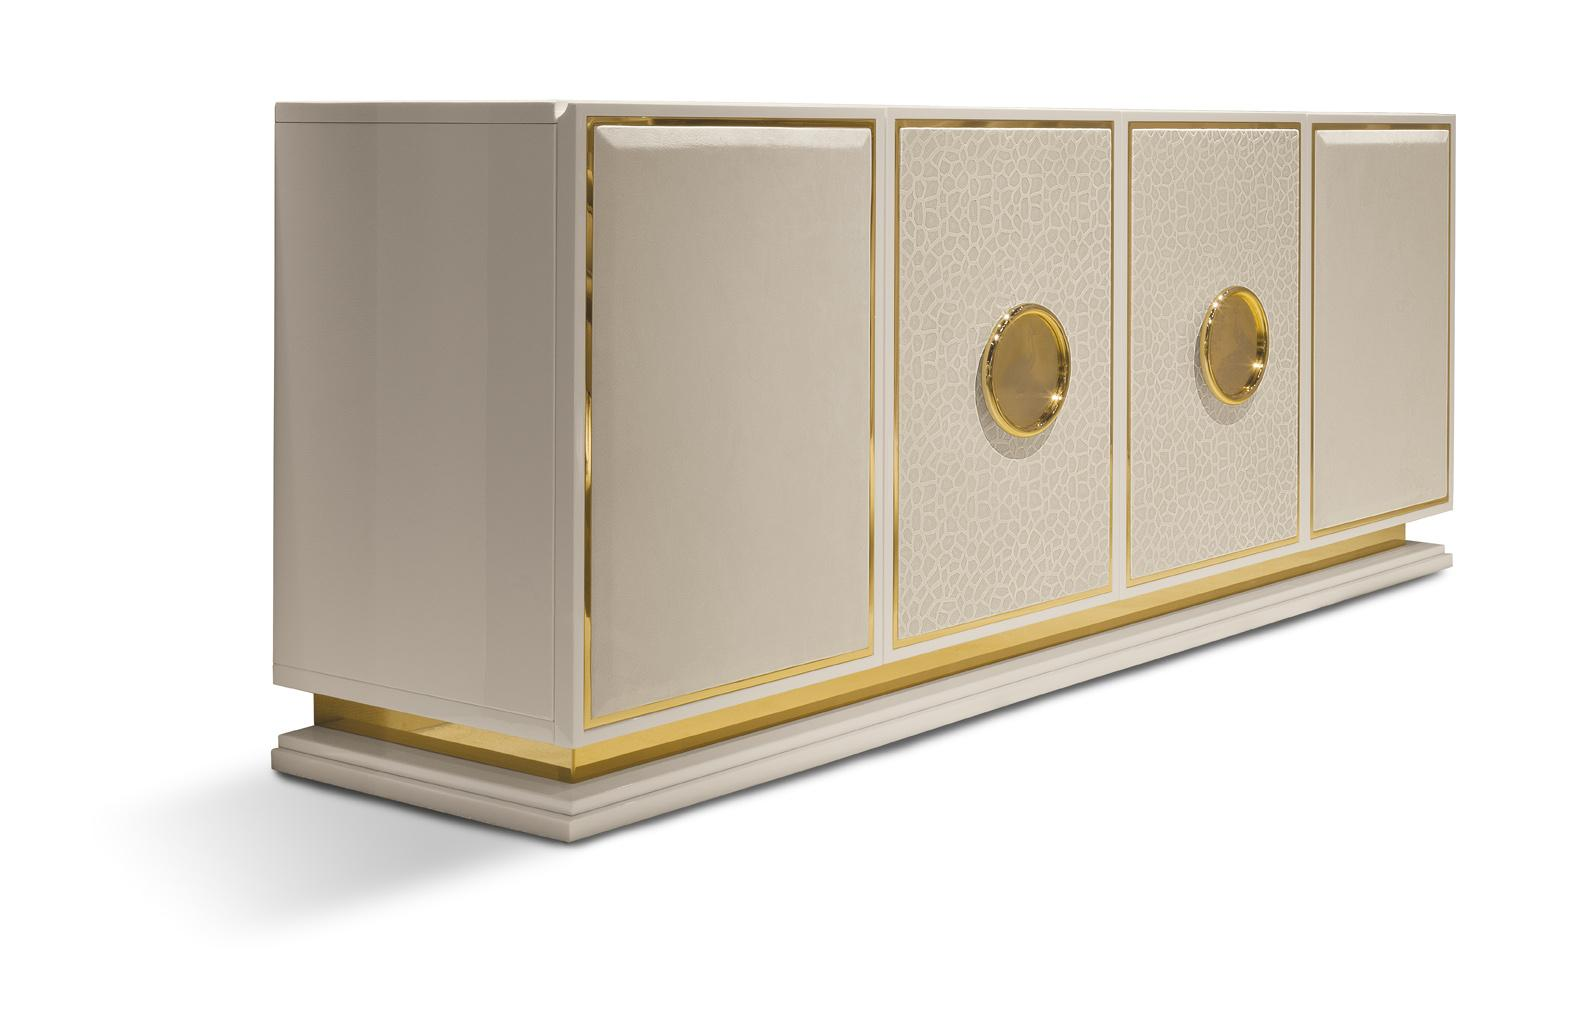 art deco living rooms italy top design class cupboard